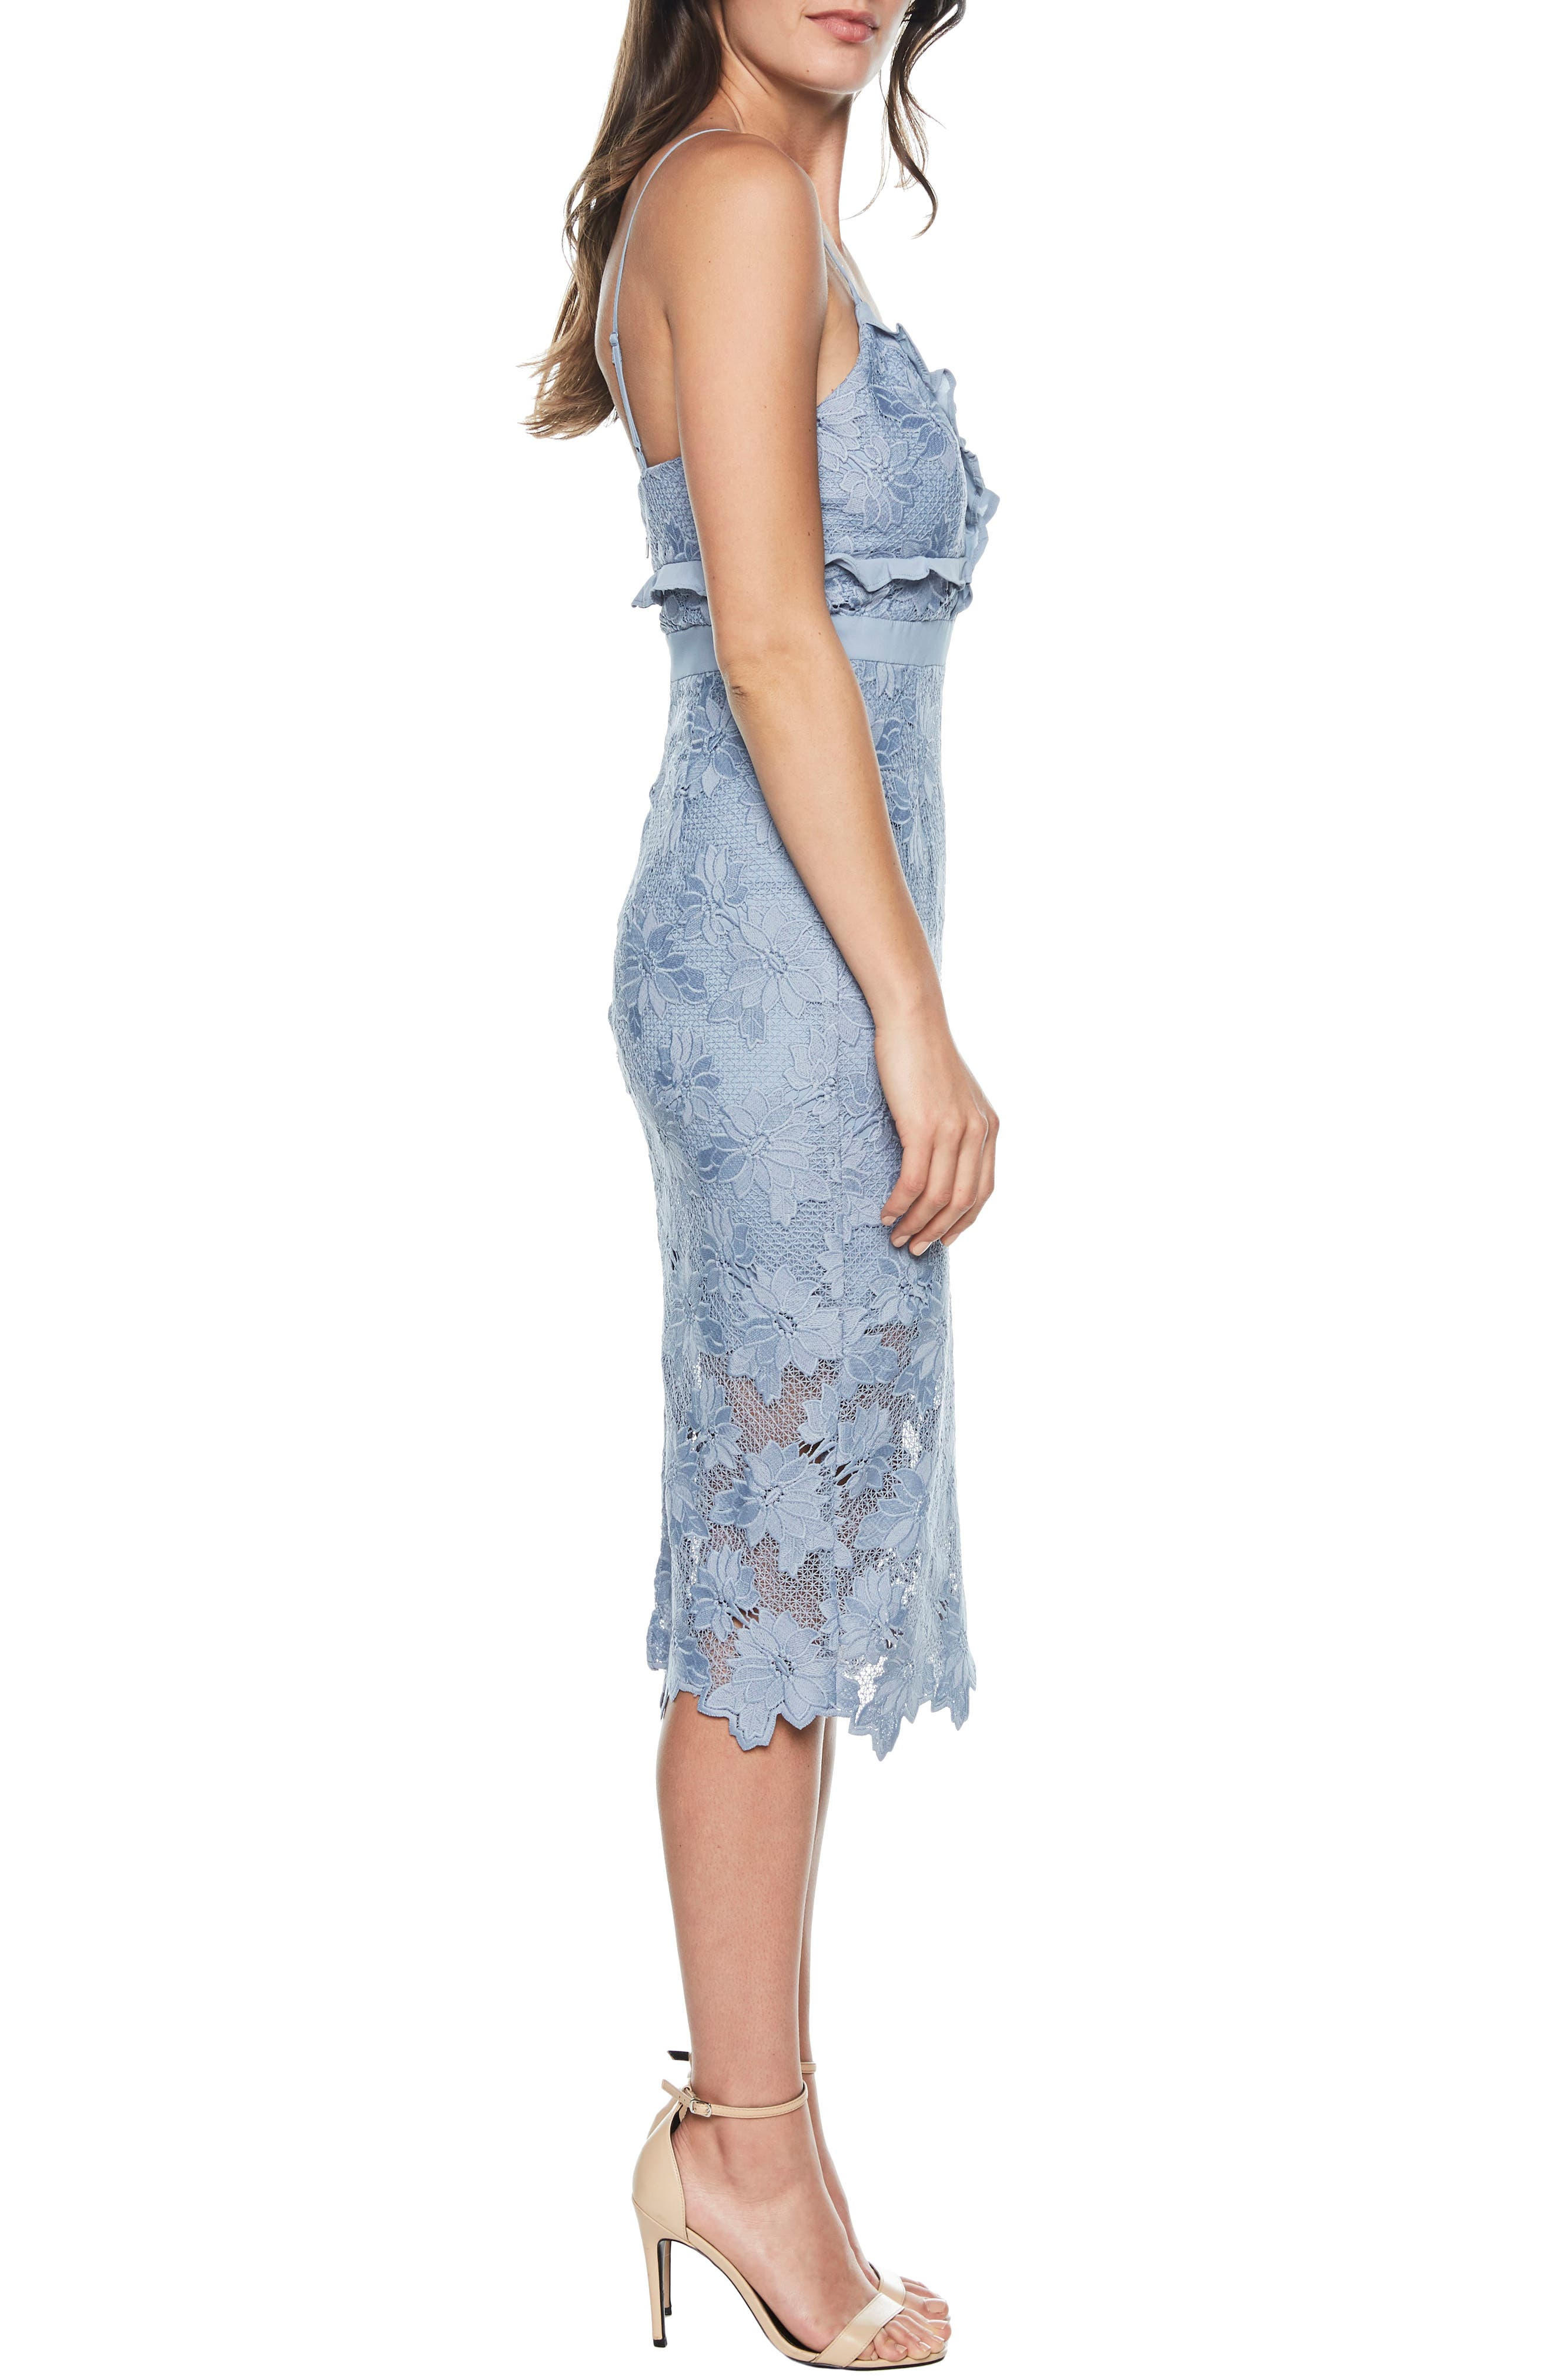 Vienna Lace Overlay Dress,                             Alternate thumbnail 3, color,                             DUSTY BLUE